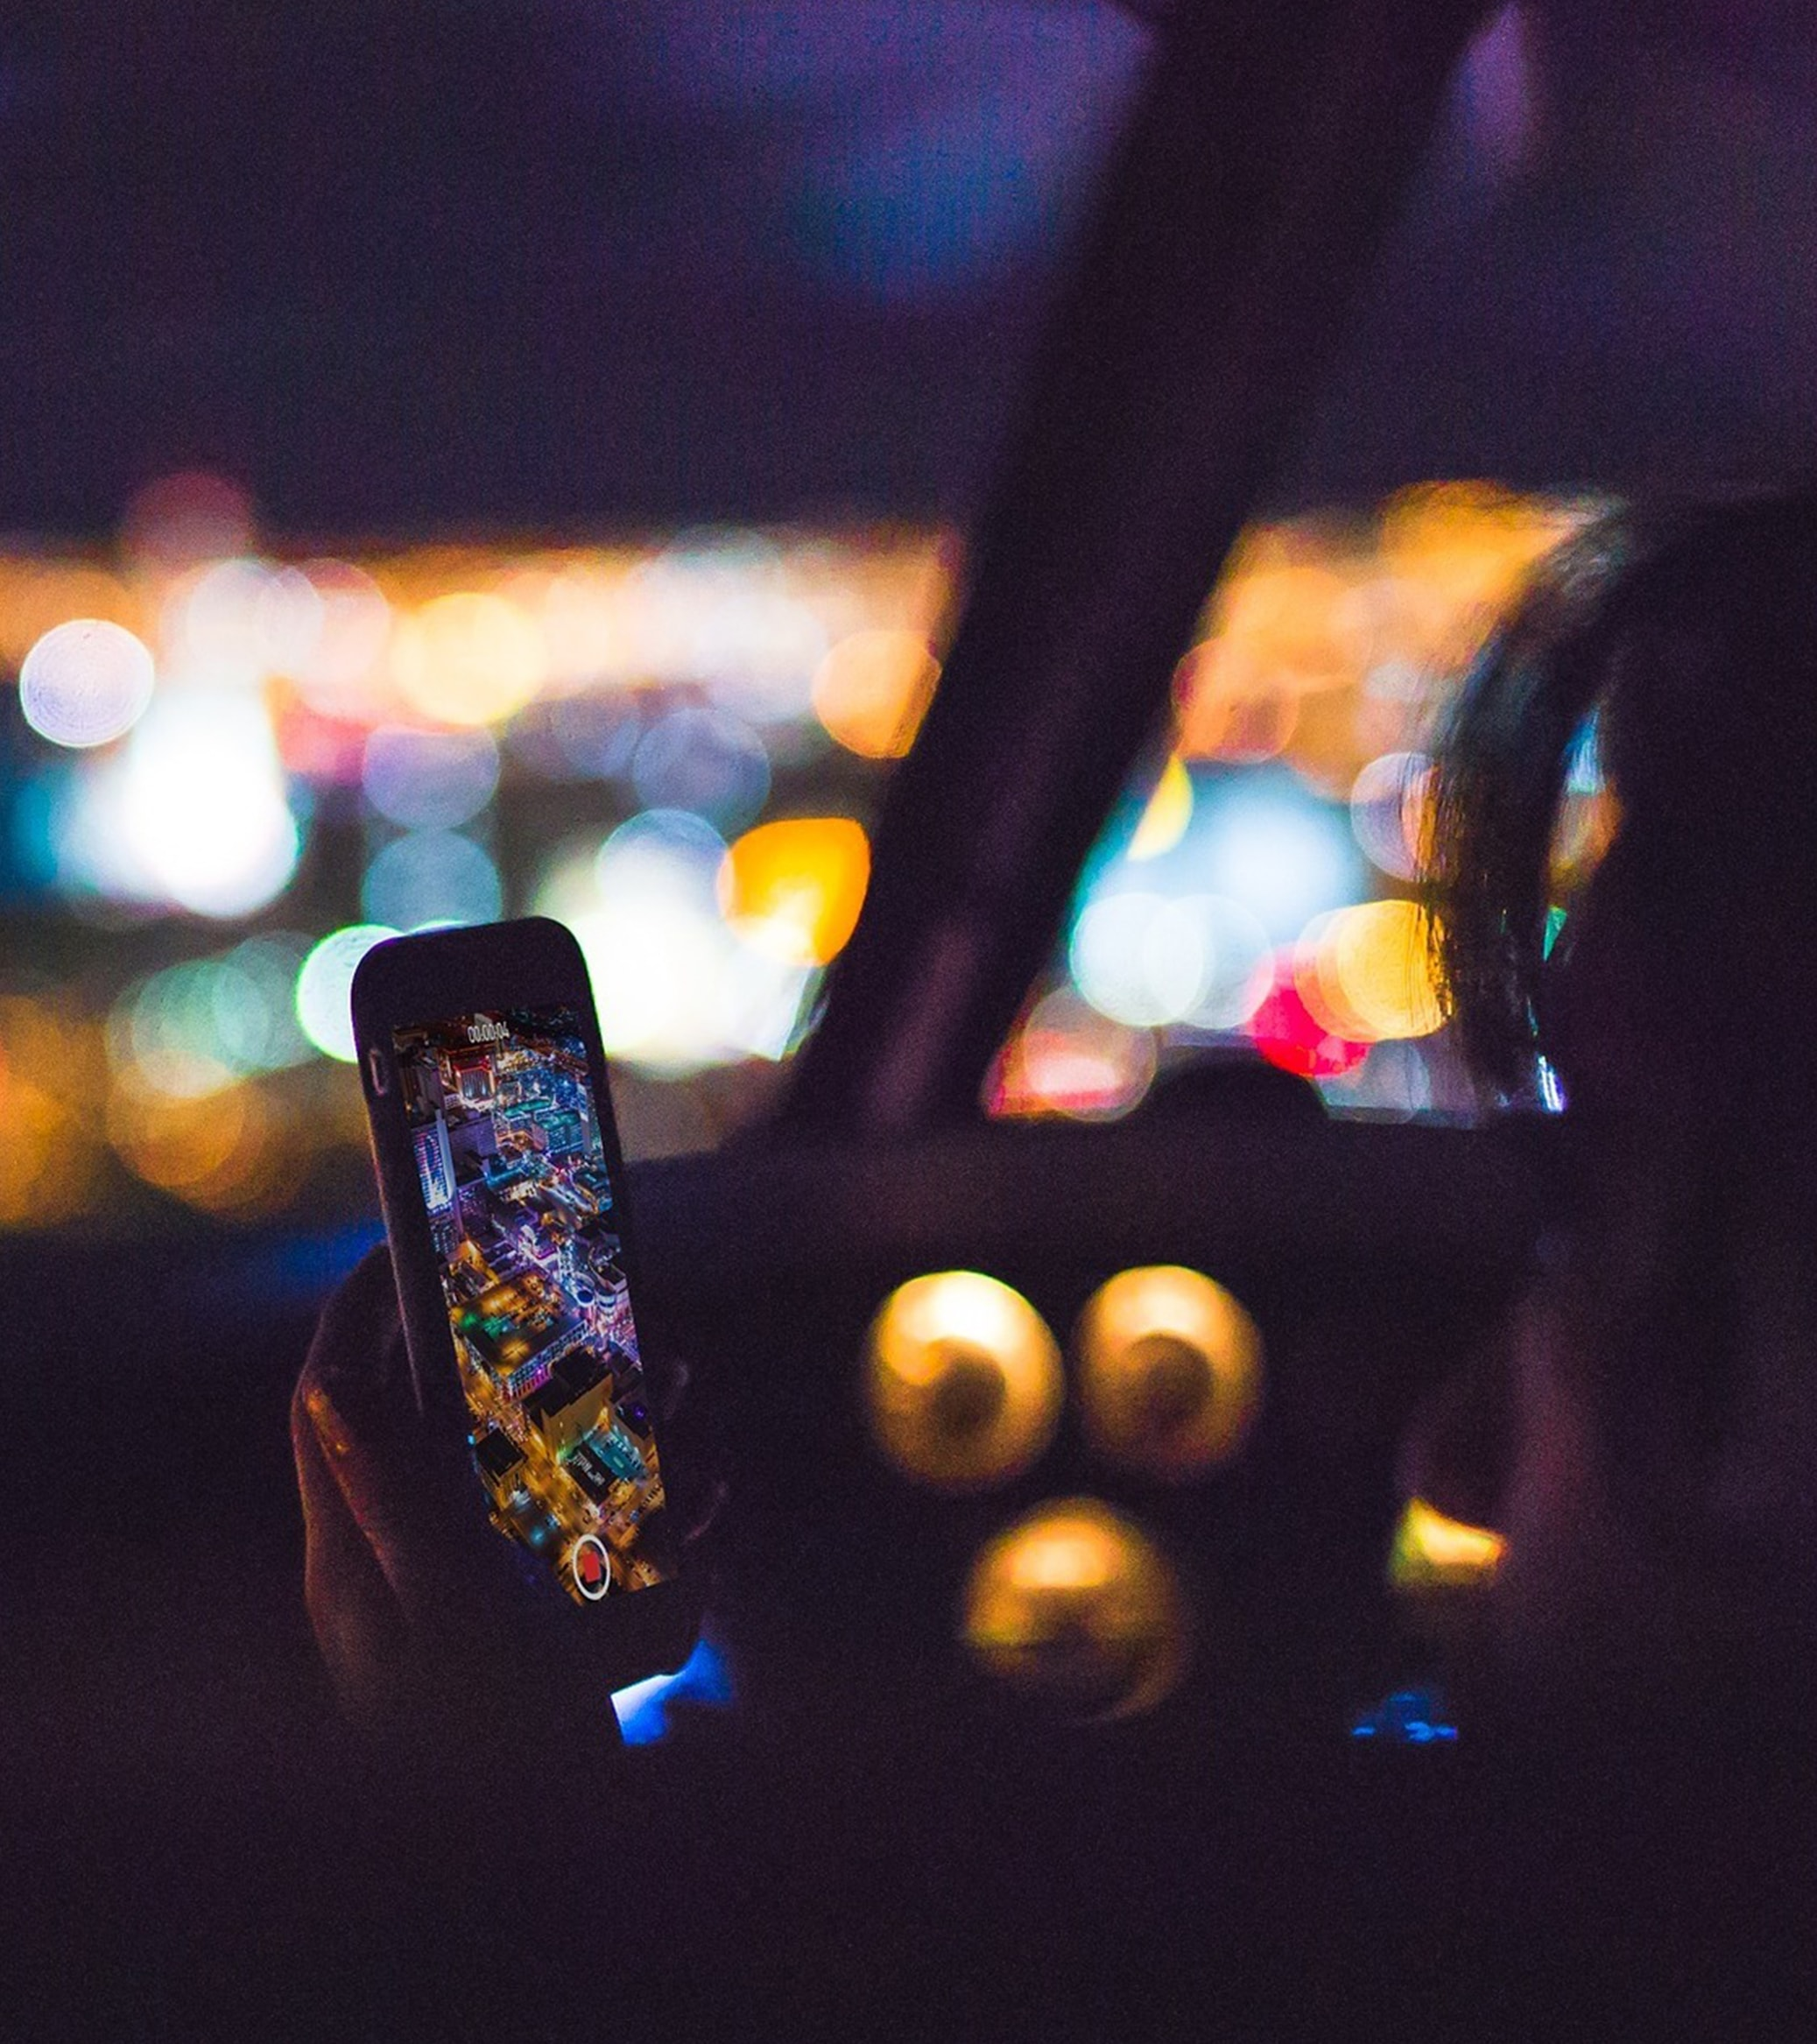 using mobile phone at night in vehicle